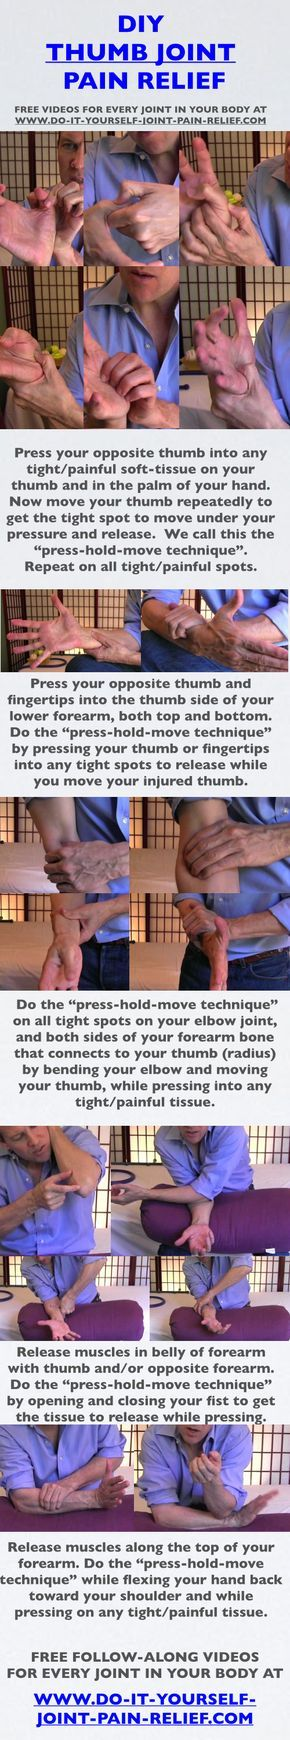 """DIY Thumb Joint Pain Relief Free follow-along videos and free pain relief """"Cheat Sheet""""... is for anybody with a painful thumb...Texter-itis, iPad-itis, etc. or any thumb injury where the bone is not currently broken. As always, Share it, Post it, Pin It, wherever you think it might help people. FREE follow-along videos of these techniques at https://www.diyjointpainrelief.com/thumb-joint-pain-relief.html"""